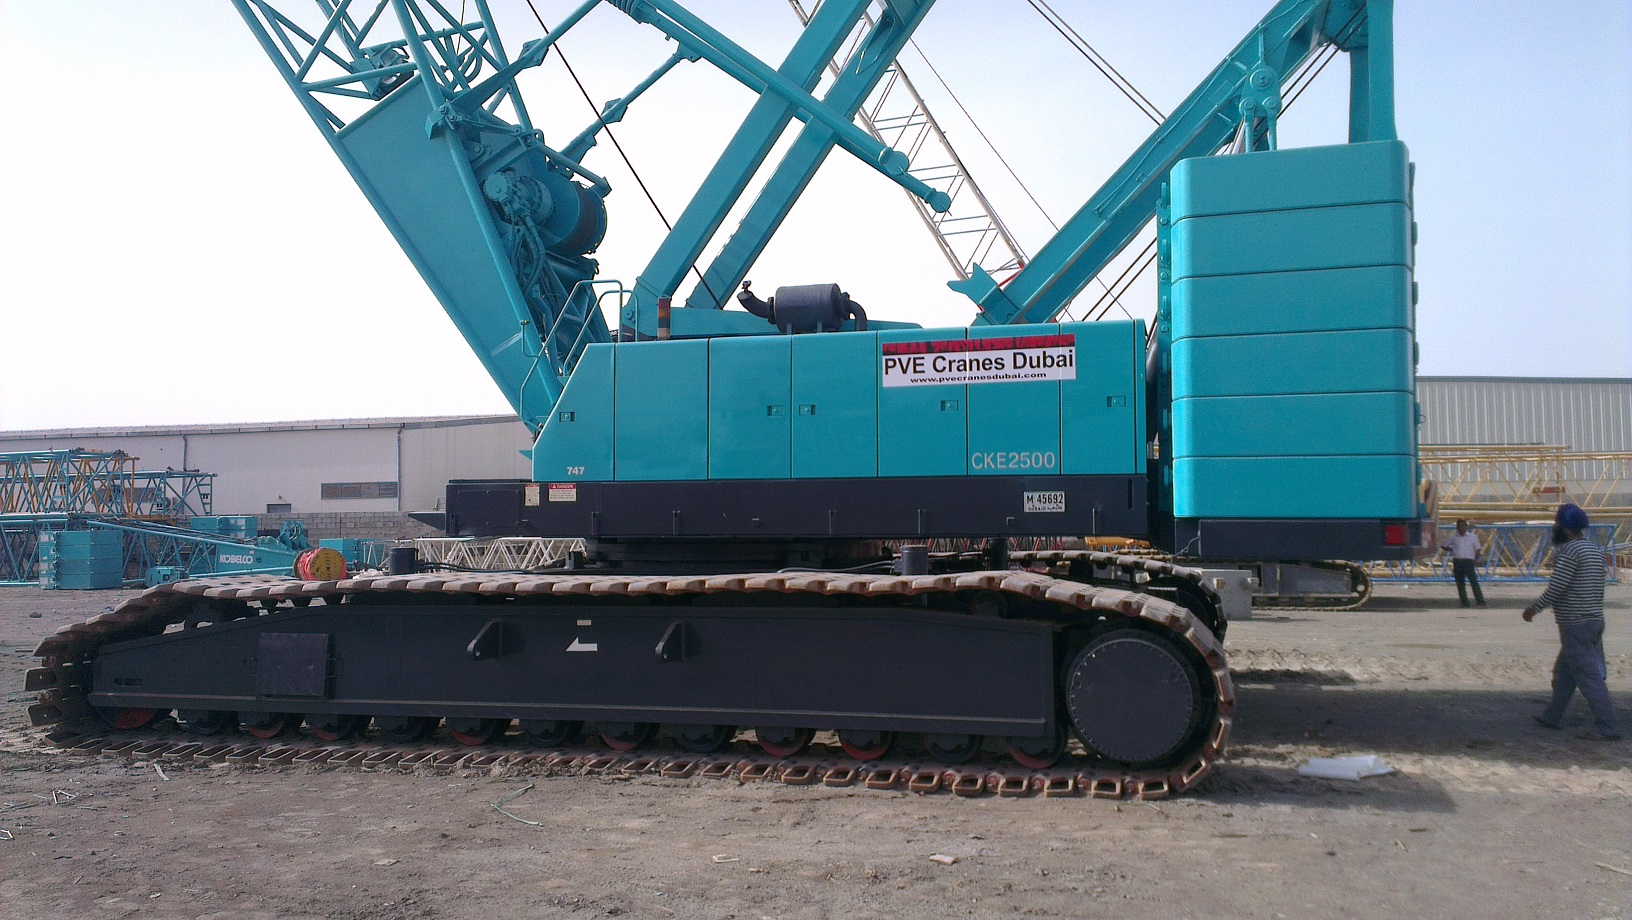 Kobelco 2500 photo - 8